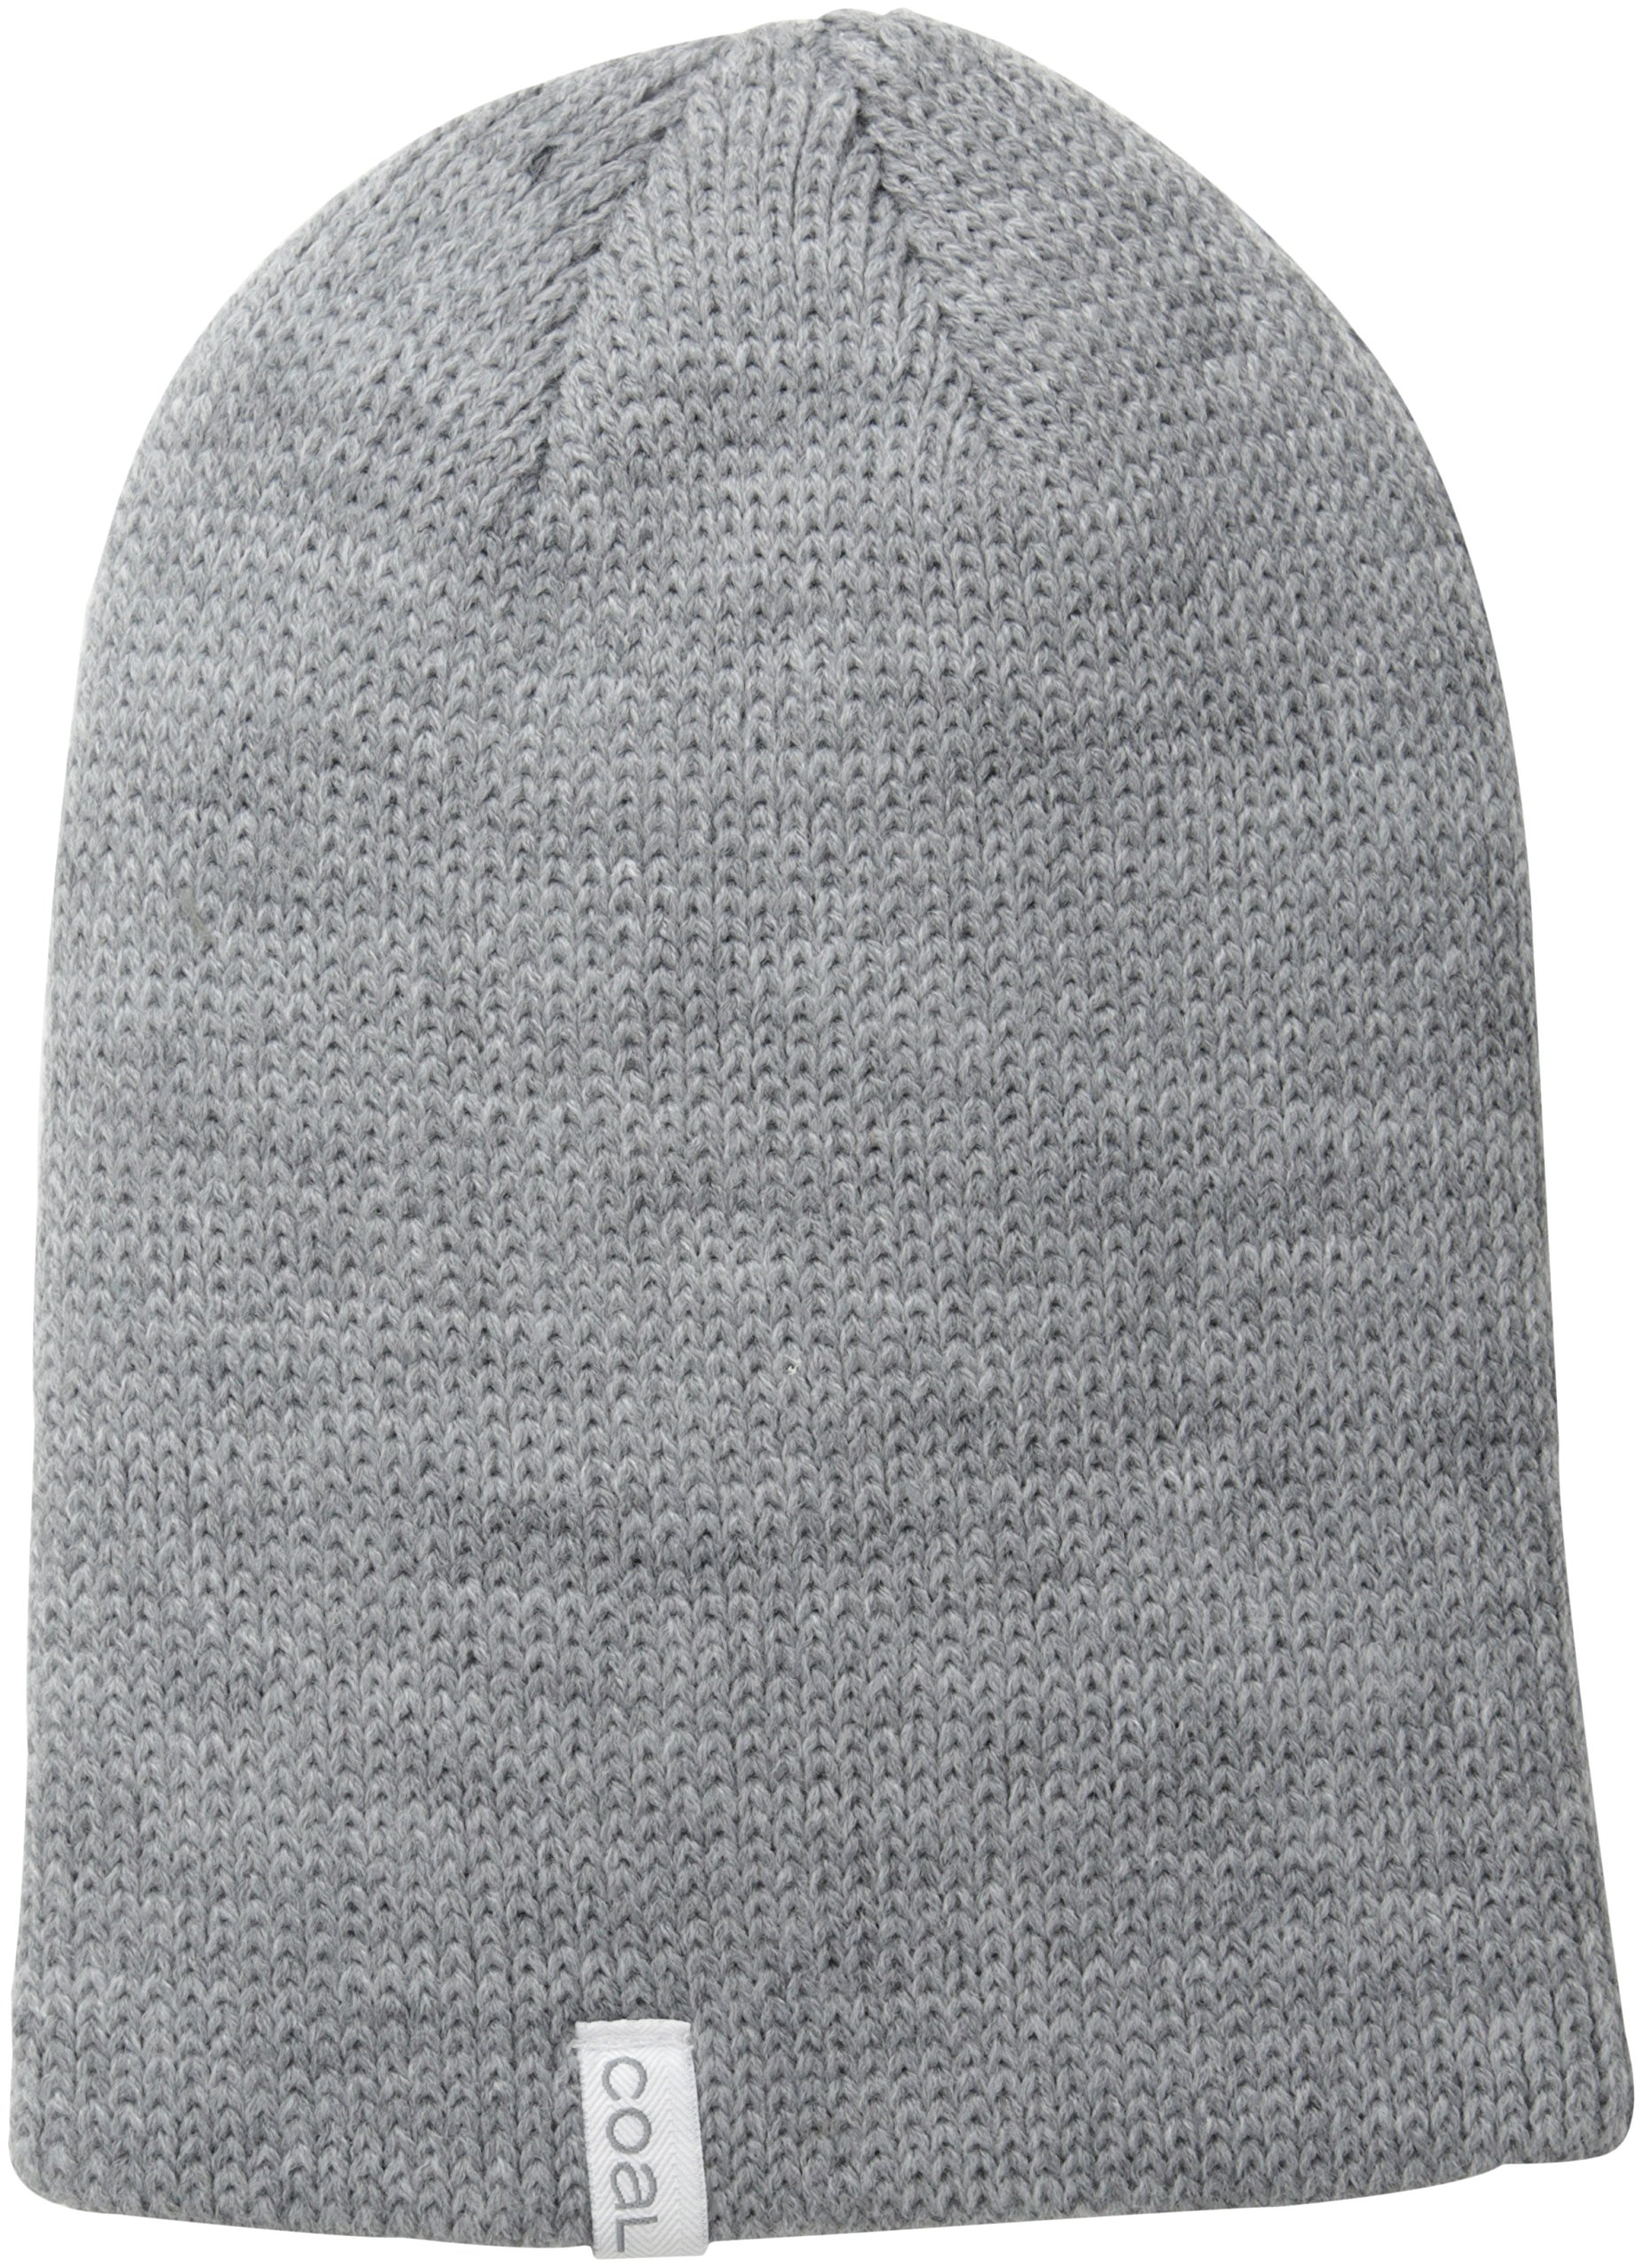 Coal The Frena Solid Fine Knit Beanie Hat,Heather Grey,One Size